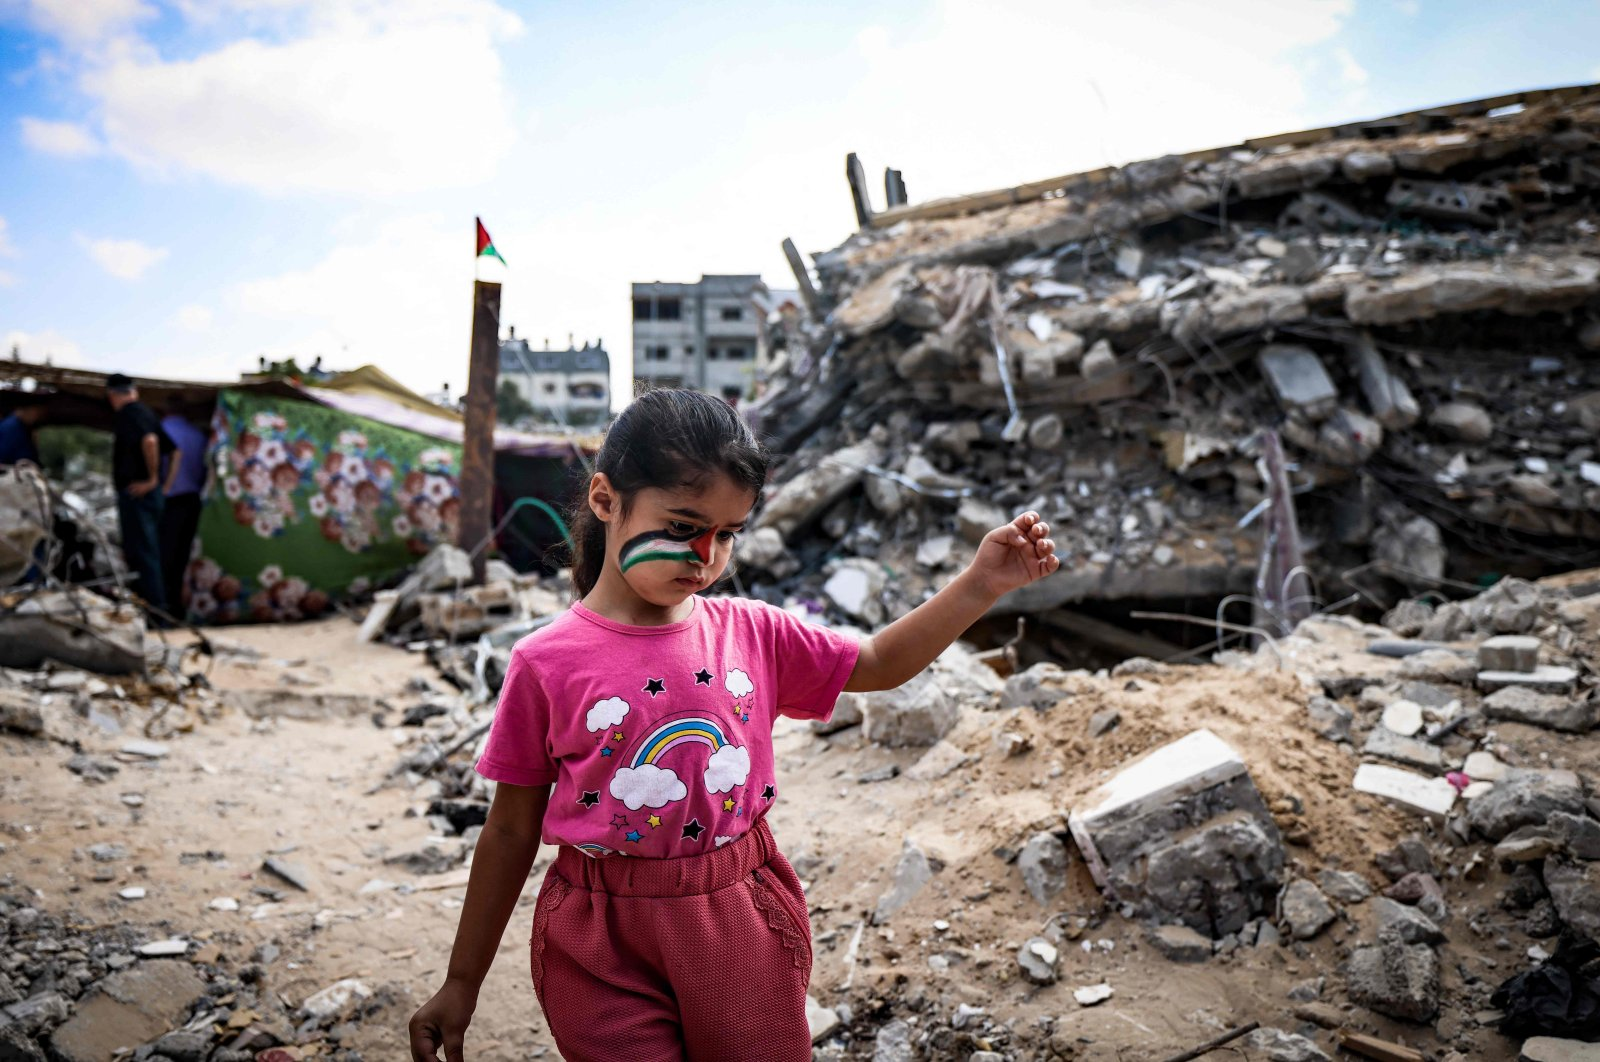 A Palestinian girl with a national flag painted on her face plays amidst the rubble of buildings destroyed by last month's Israeli bombardment of the Gaza Strip, in Beit Lahia, Palestine, June 19, 2021. (AFP Photo)